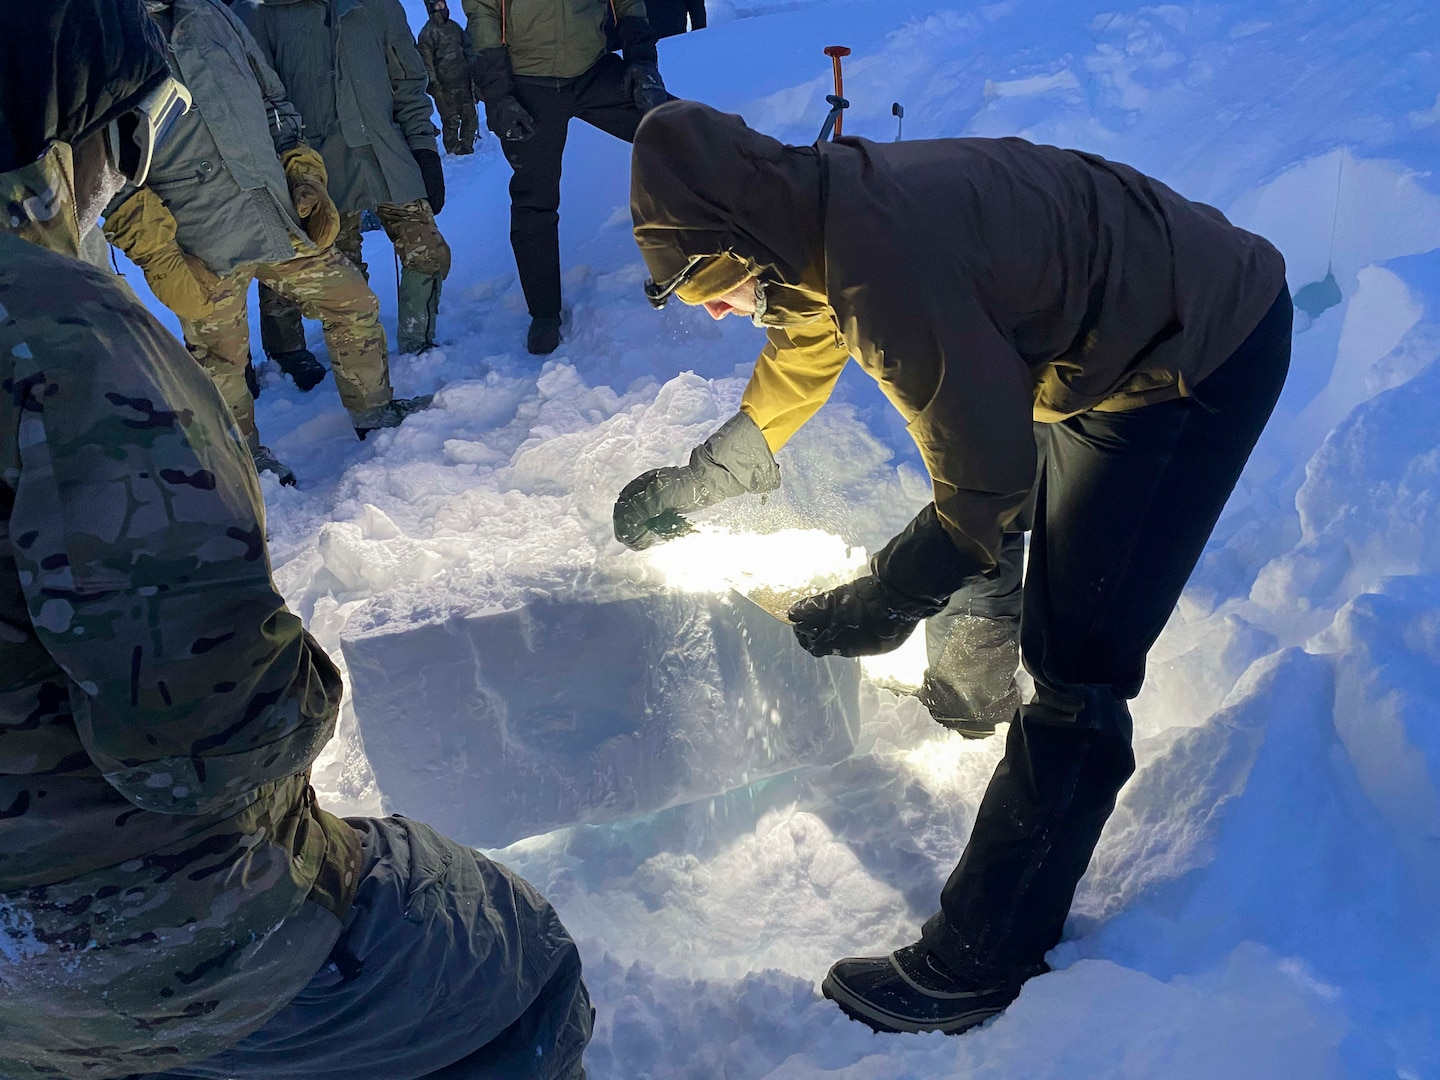 SERE specialists conquer the arctic